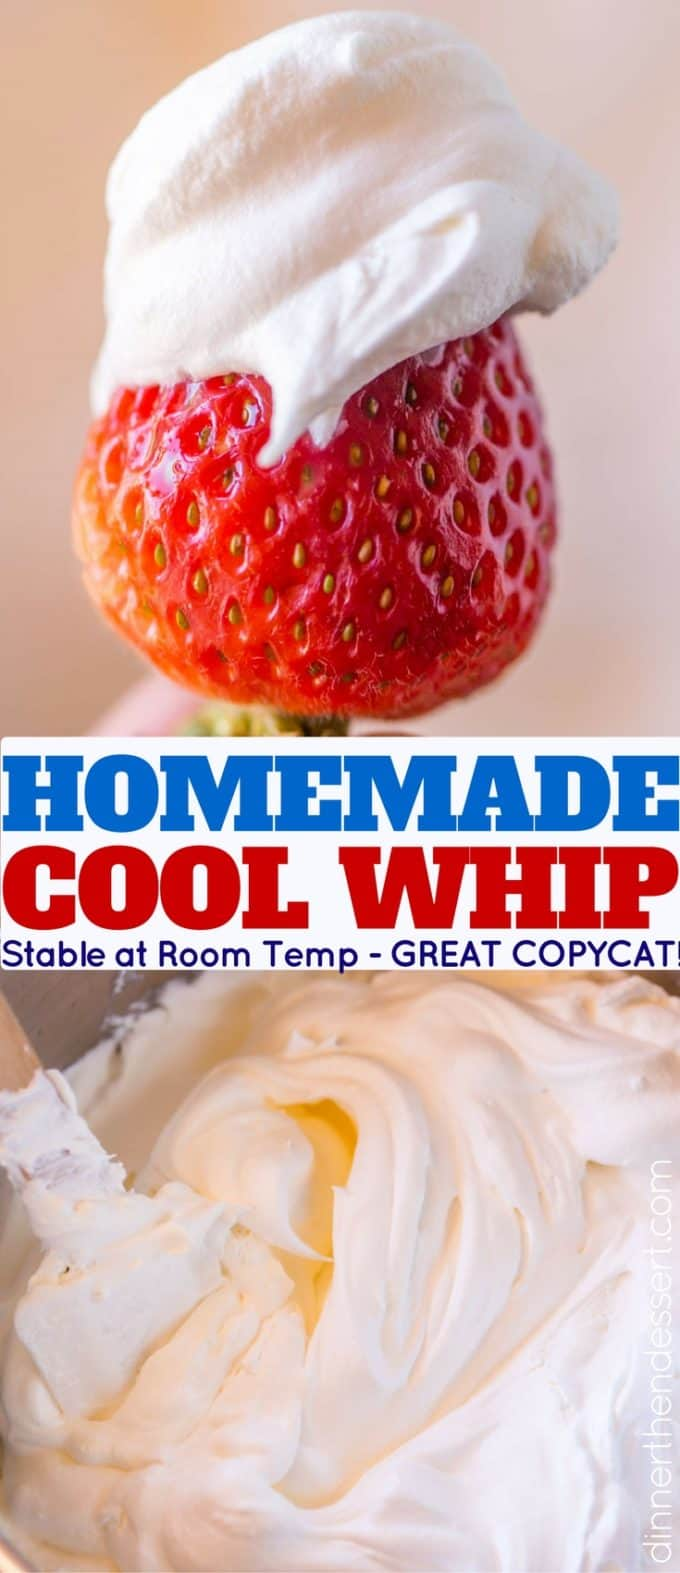 Homemade Cool Whip that is stable and can be frozen and defrosted like the store bought kind but made at home and SO delicious. Perfect for any recipes you're making that ask for Cool Whip!